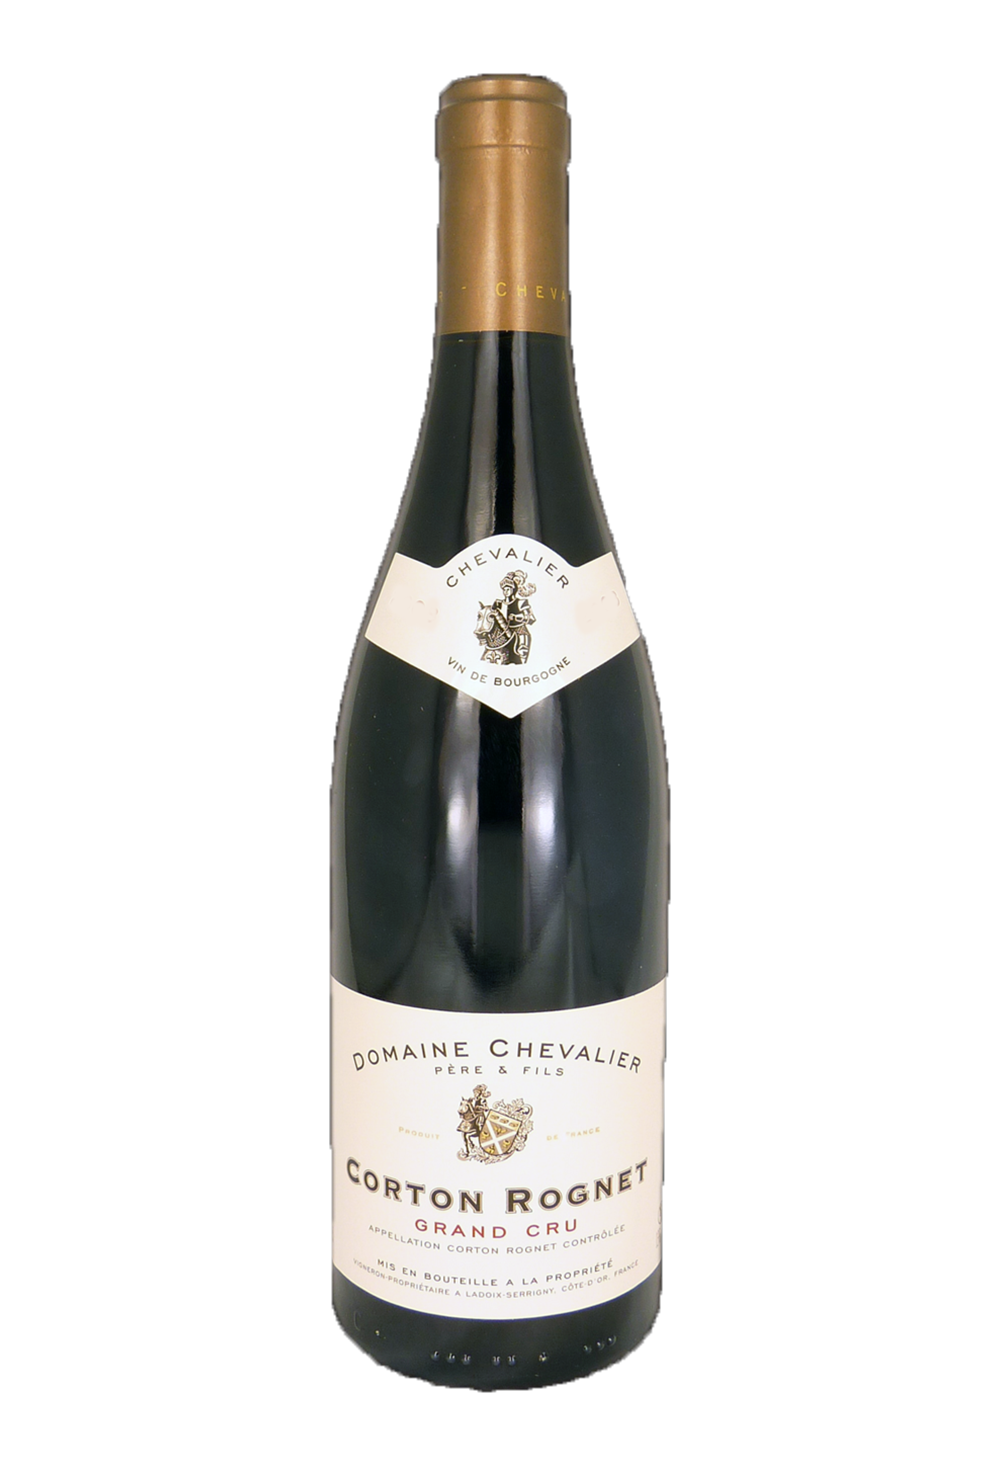 vin corton cuv e grand cru le rognet 2011 du domaine chevalier p re et fils. Black Bedroom Furniture Sets. Home Design Ideas